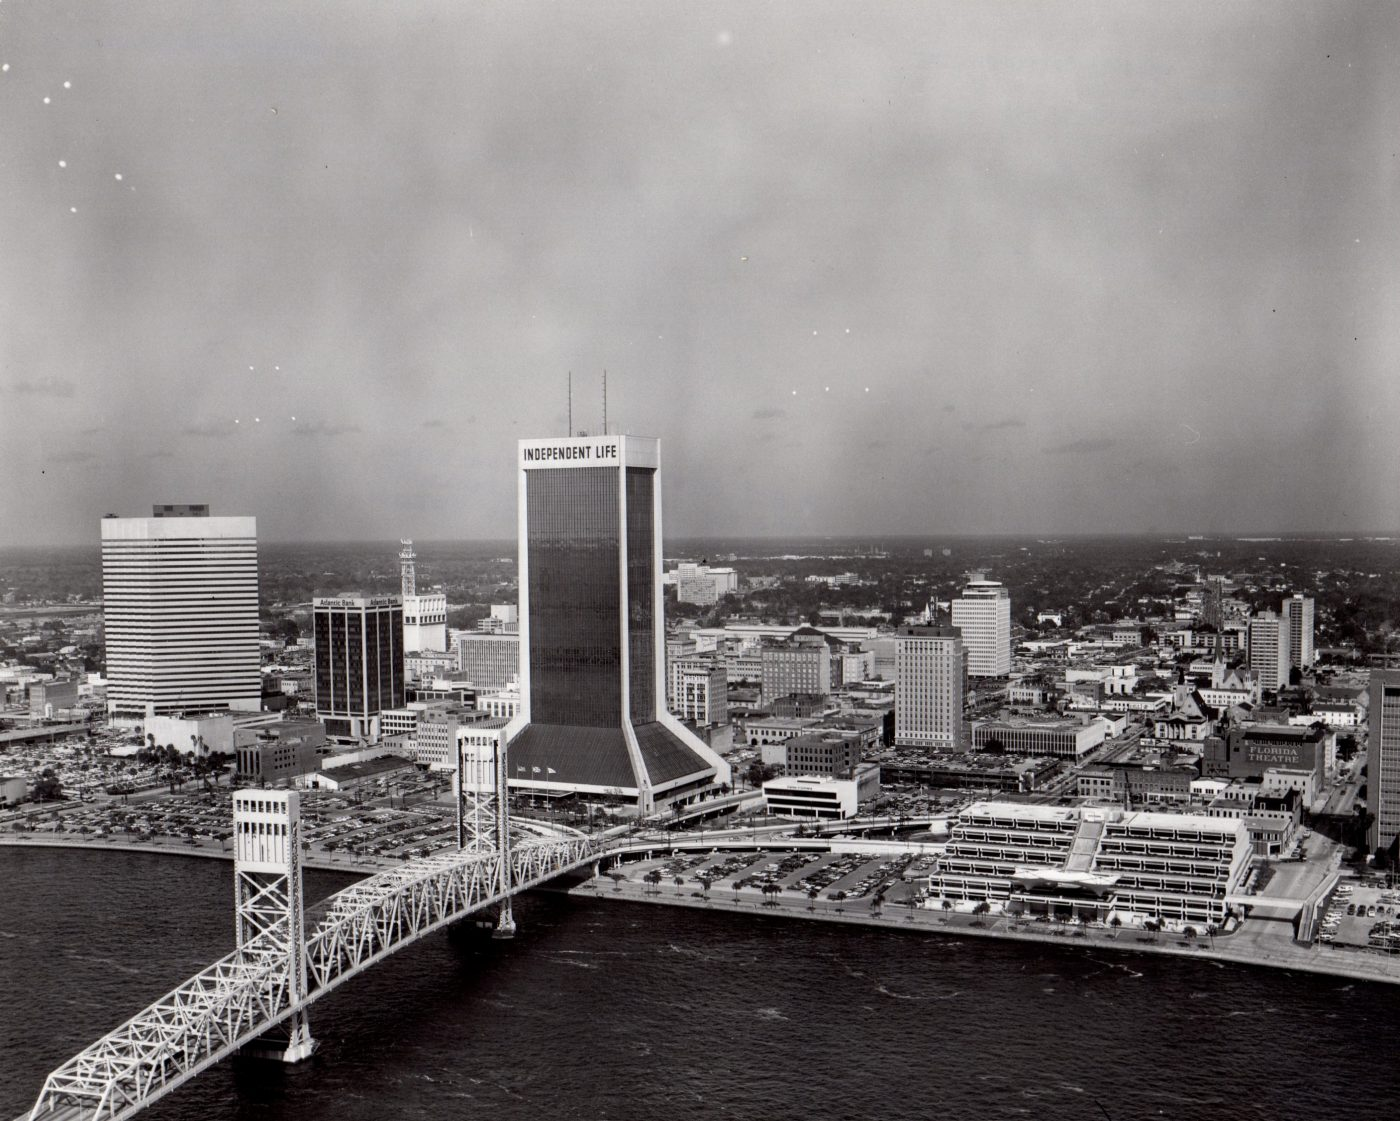 Independent Life Building, on the east side of Julia Street between Duval and Church Streets, held a commanding view of the St. Johns River, with the Main Street Bridge in the foreground.